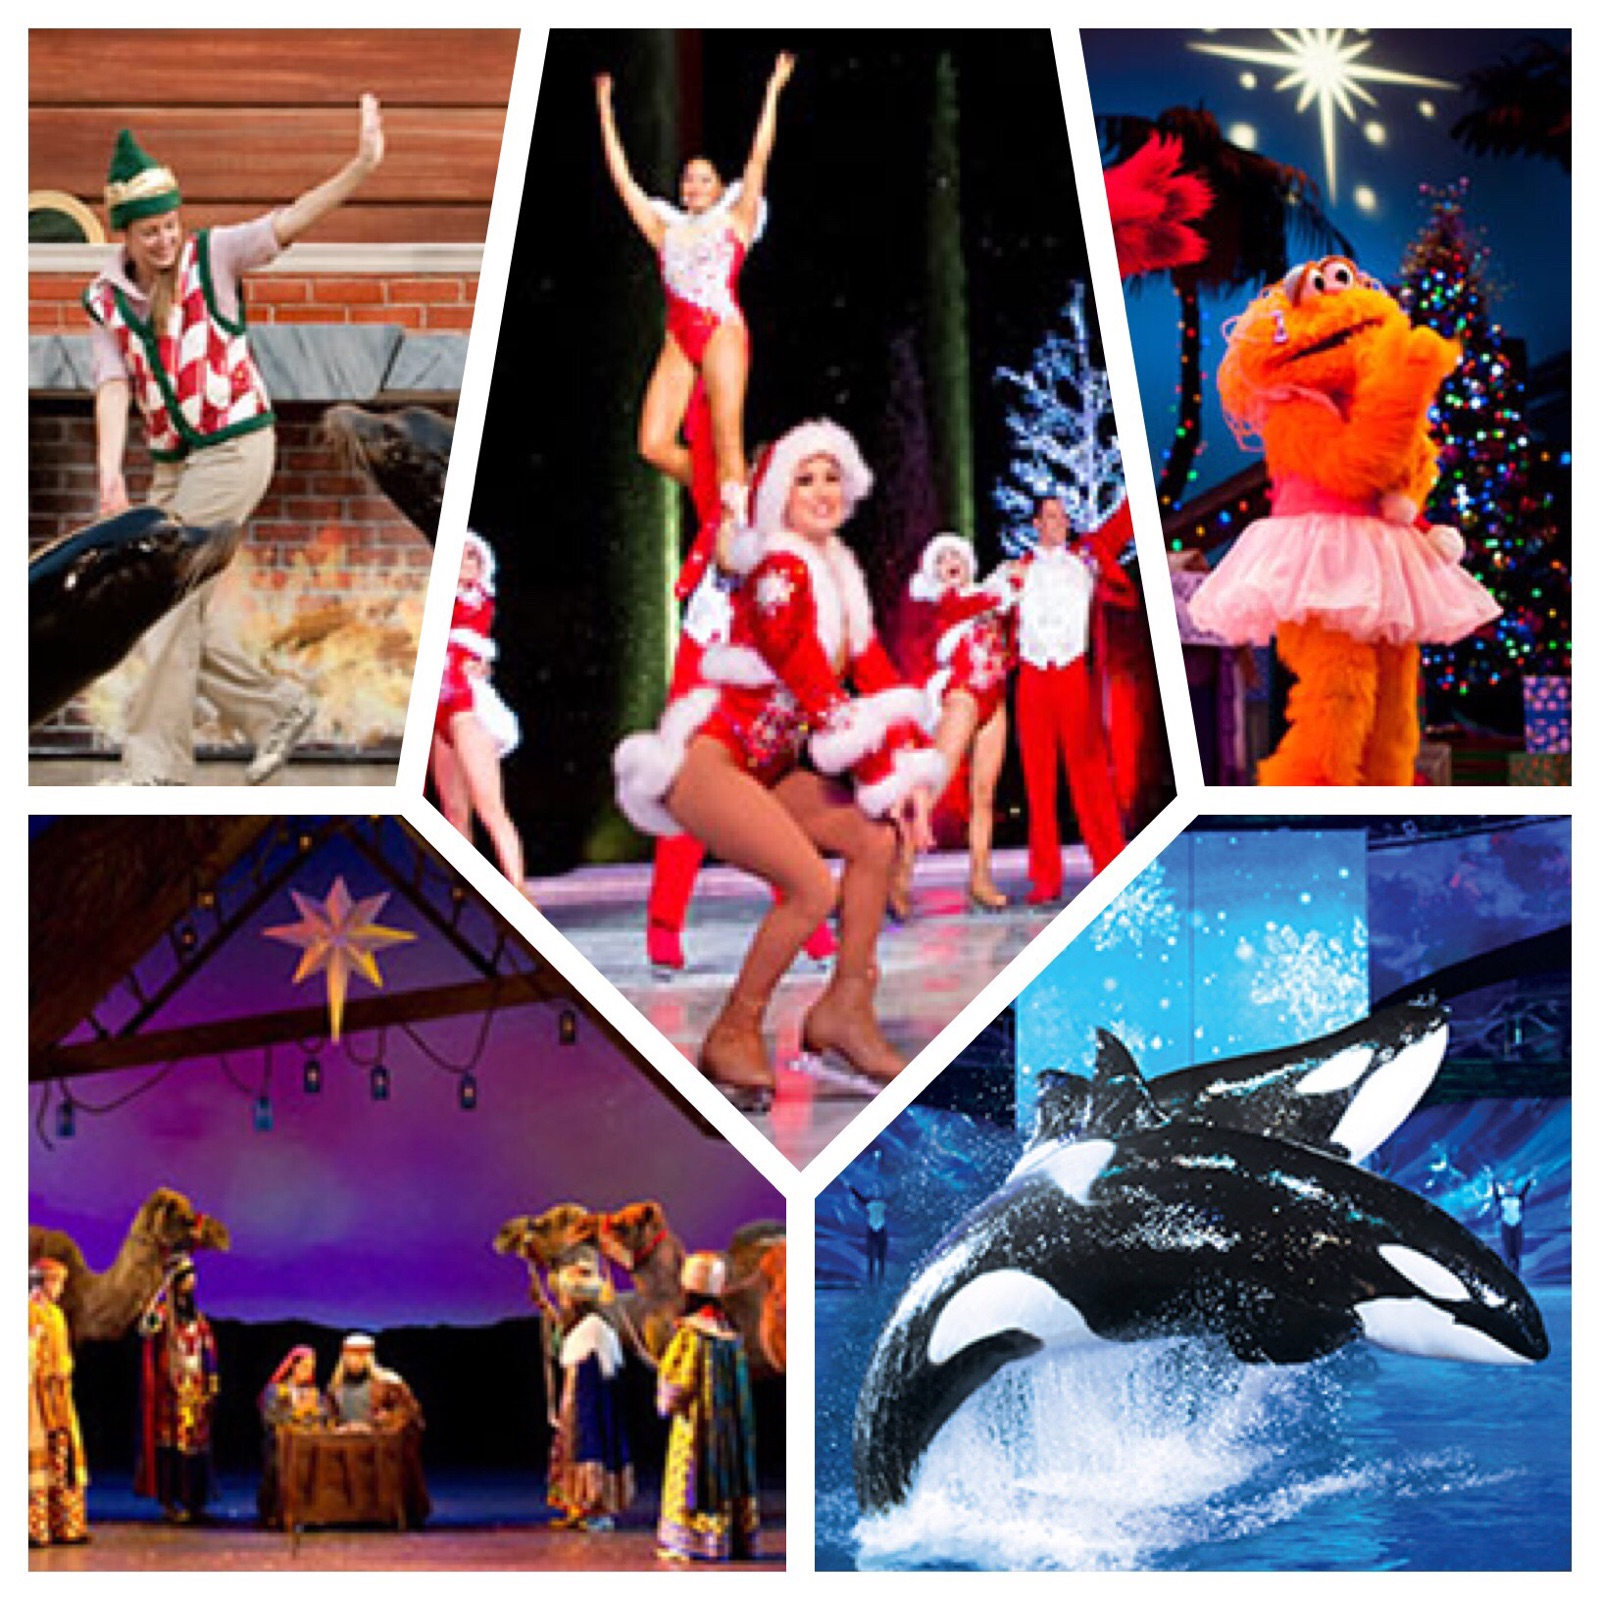 Christmas at SeaWorld - 5 Great Holiday Shows: Clyde & Seamore's Countdown to Christmas, Winter Wonderland on Ice, Elmo's Christmas Wish, O Wonderous Night, and Shamu Christmas Miracle